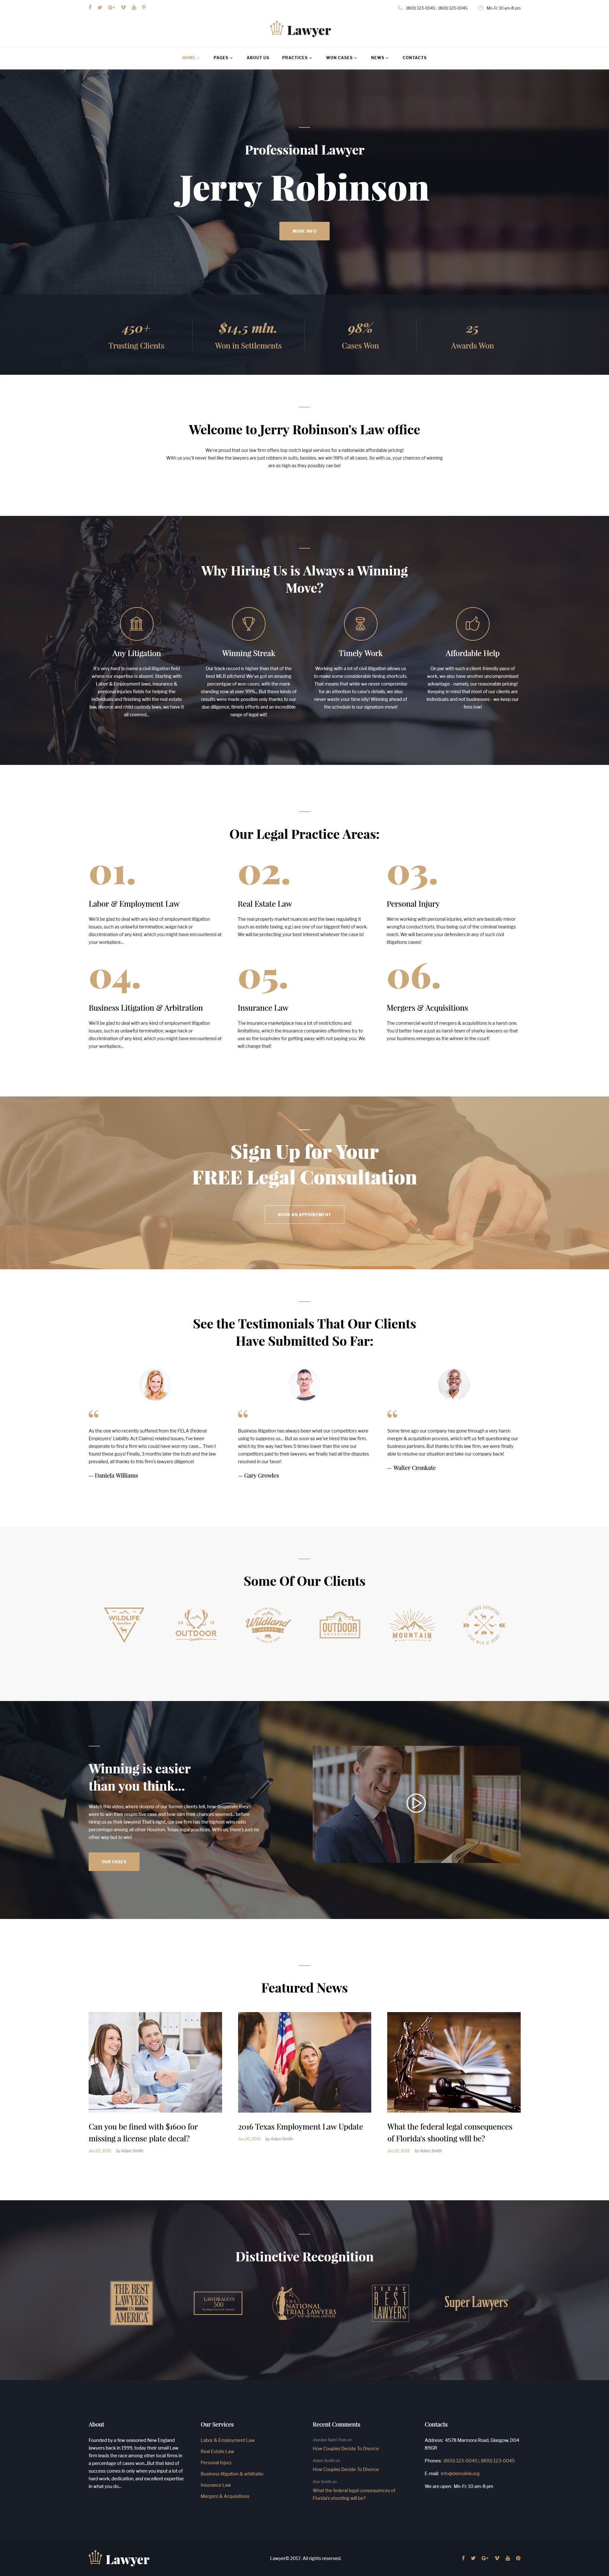 10 HTML Website Themes - $19 - lawyer attorney multipage website template 62274 original